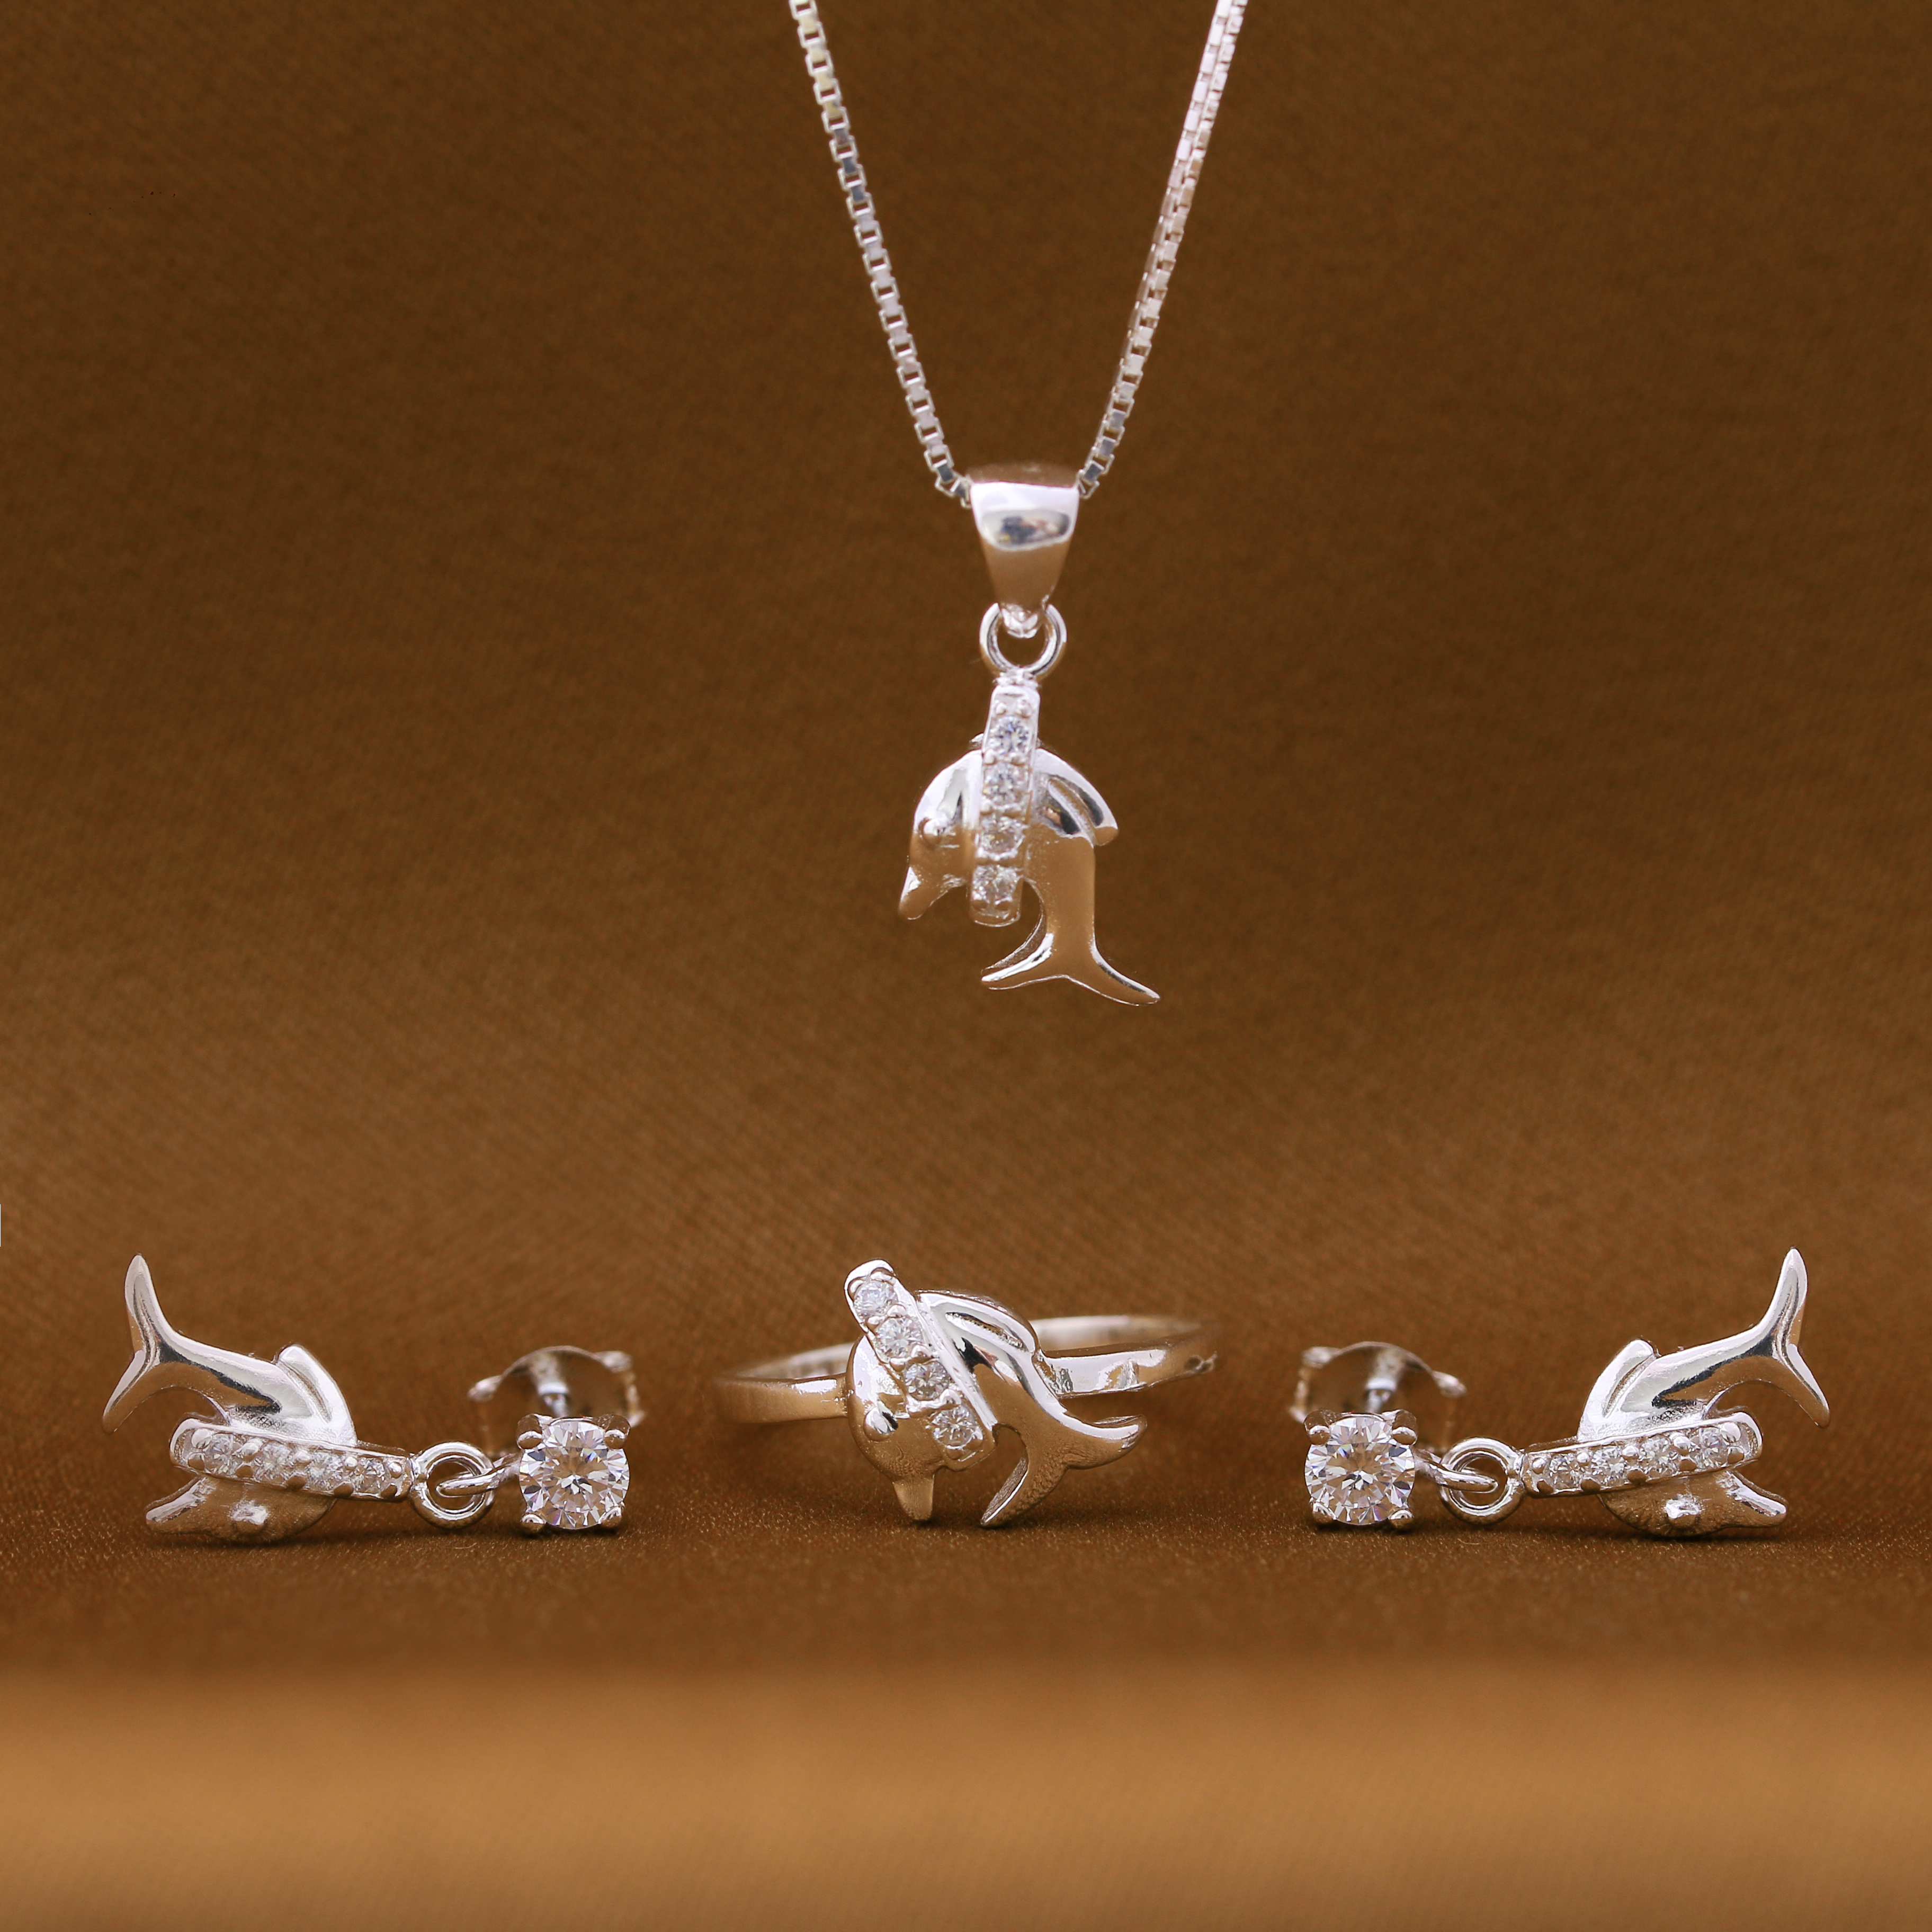 Marina Dolphin 925 Silver Necklace, Earrings and Ring Set by Argento